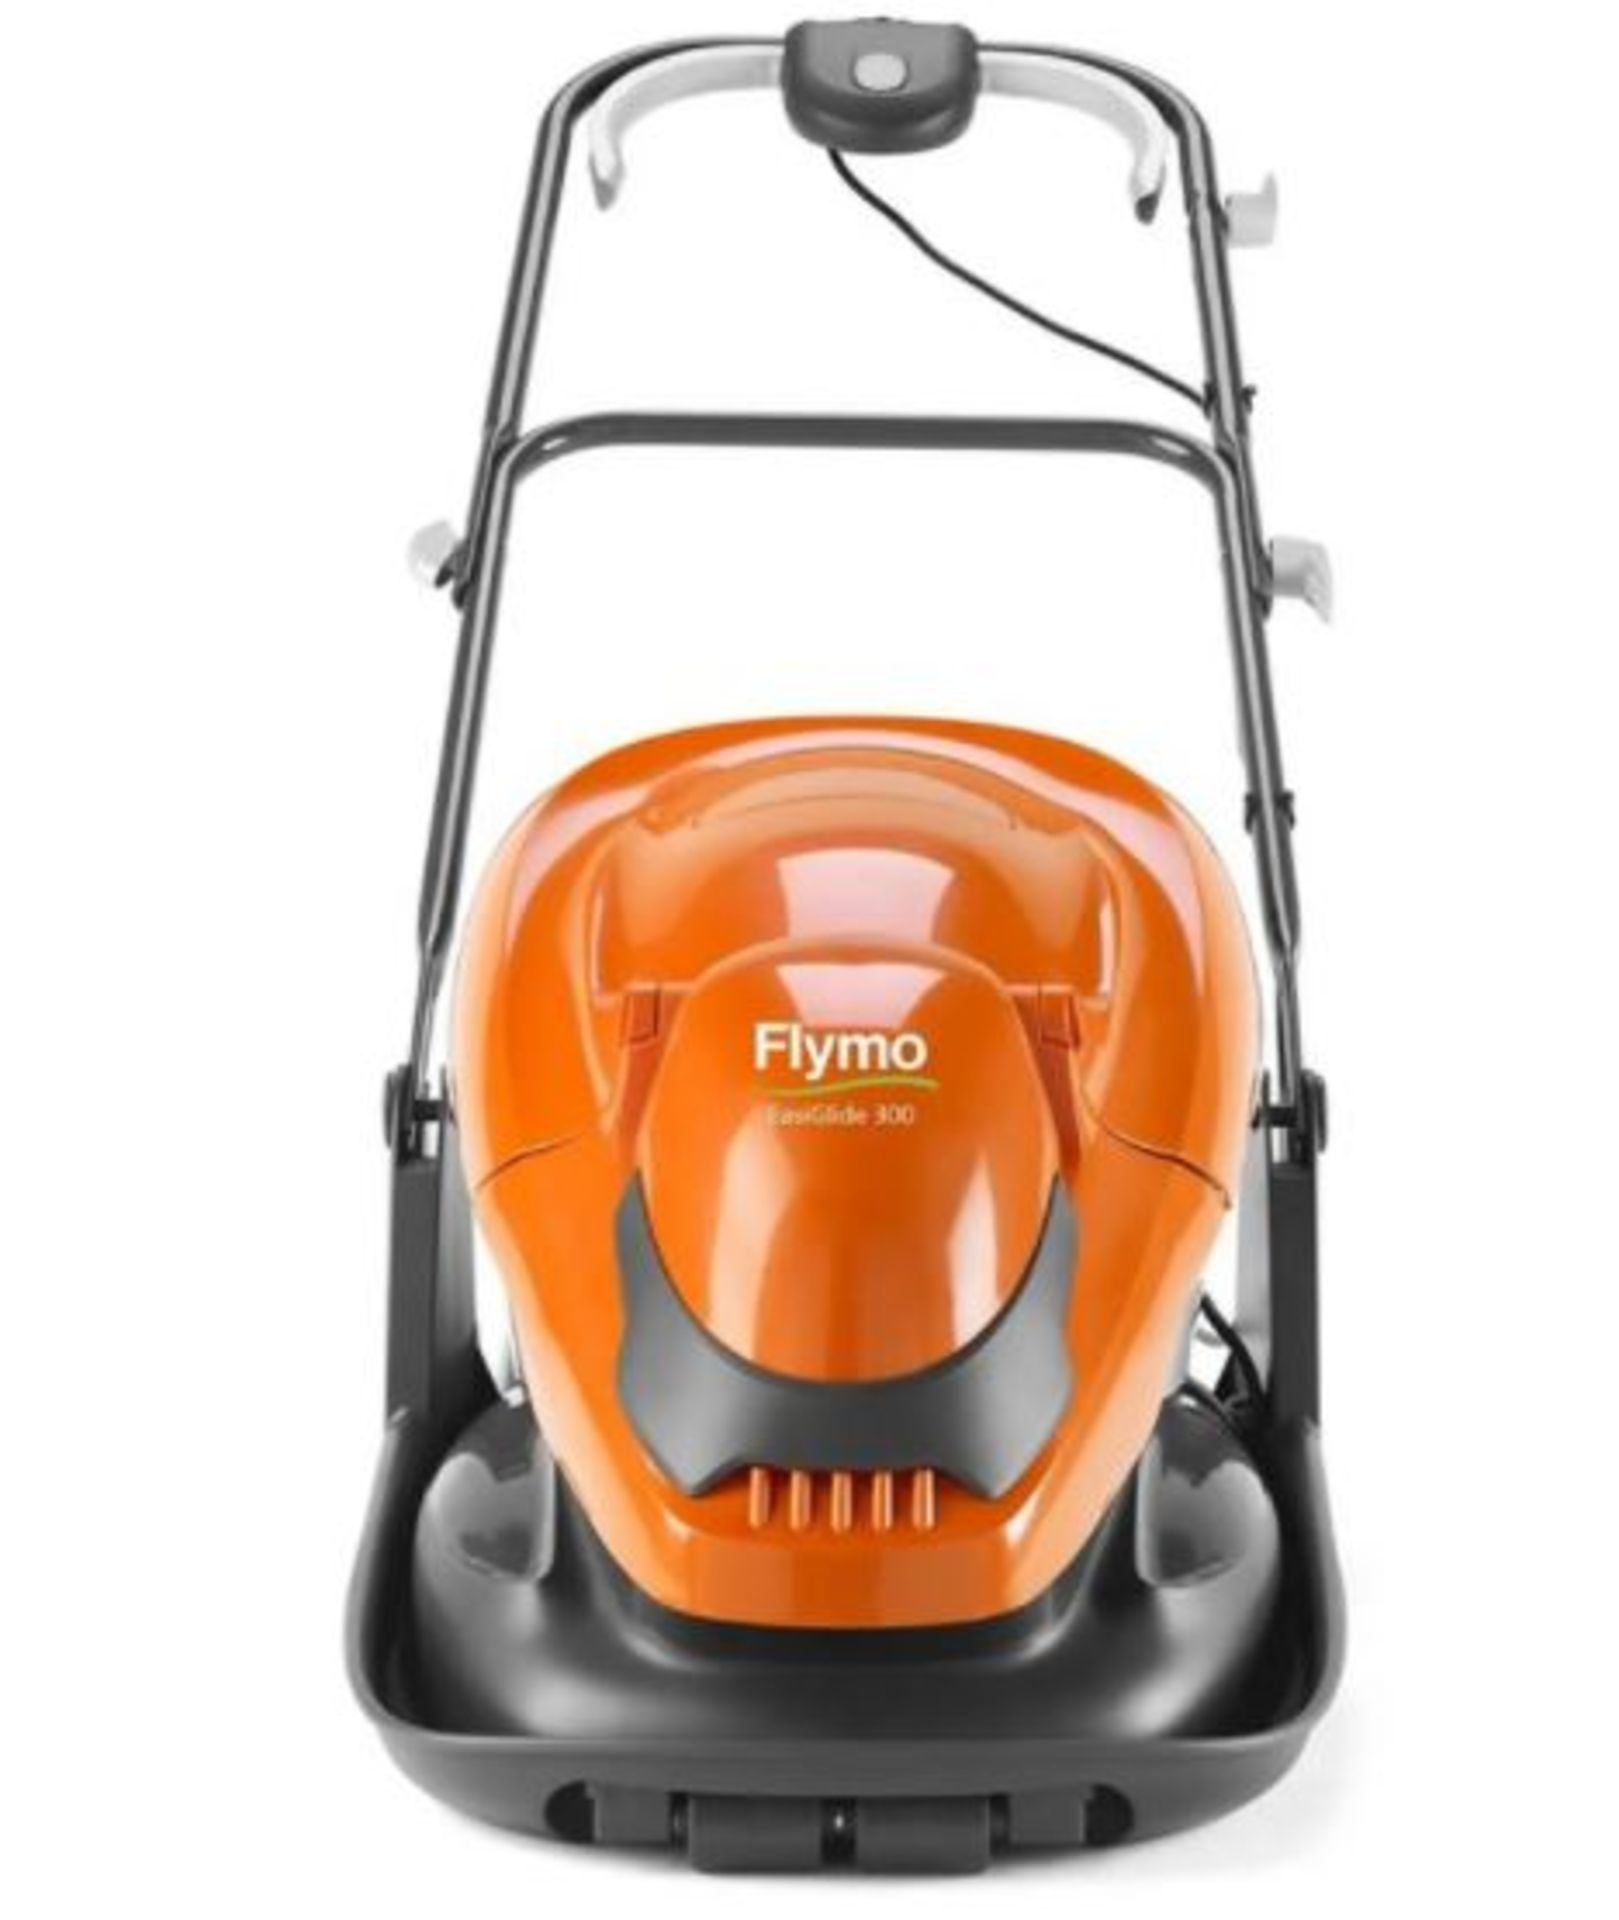 (P6) 2x Flymo EasiGlide 300 RRP £99 Each. Hover Collect Lawnmower.